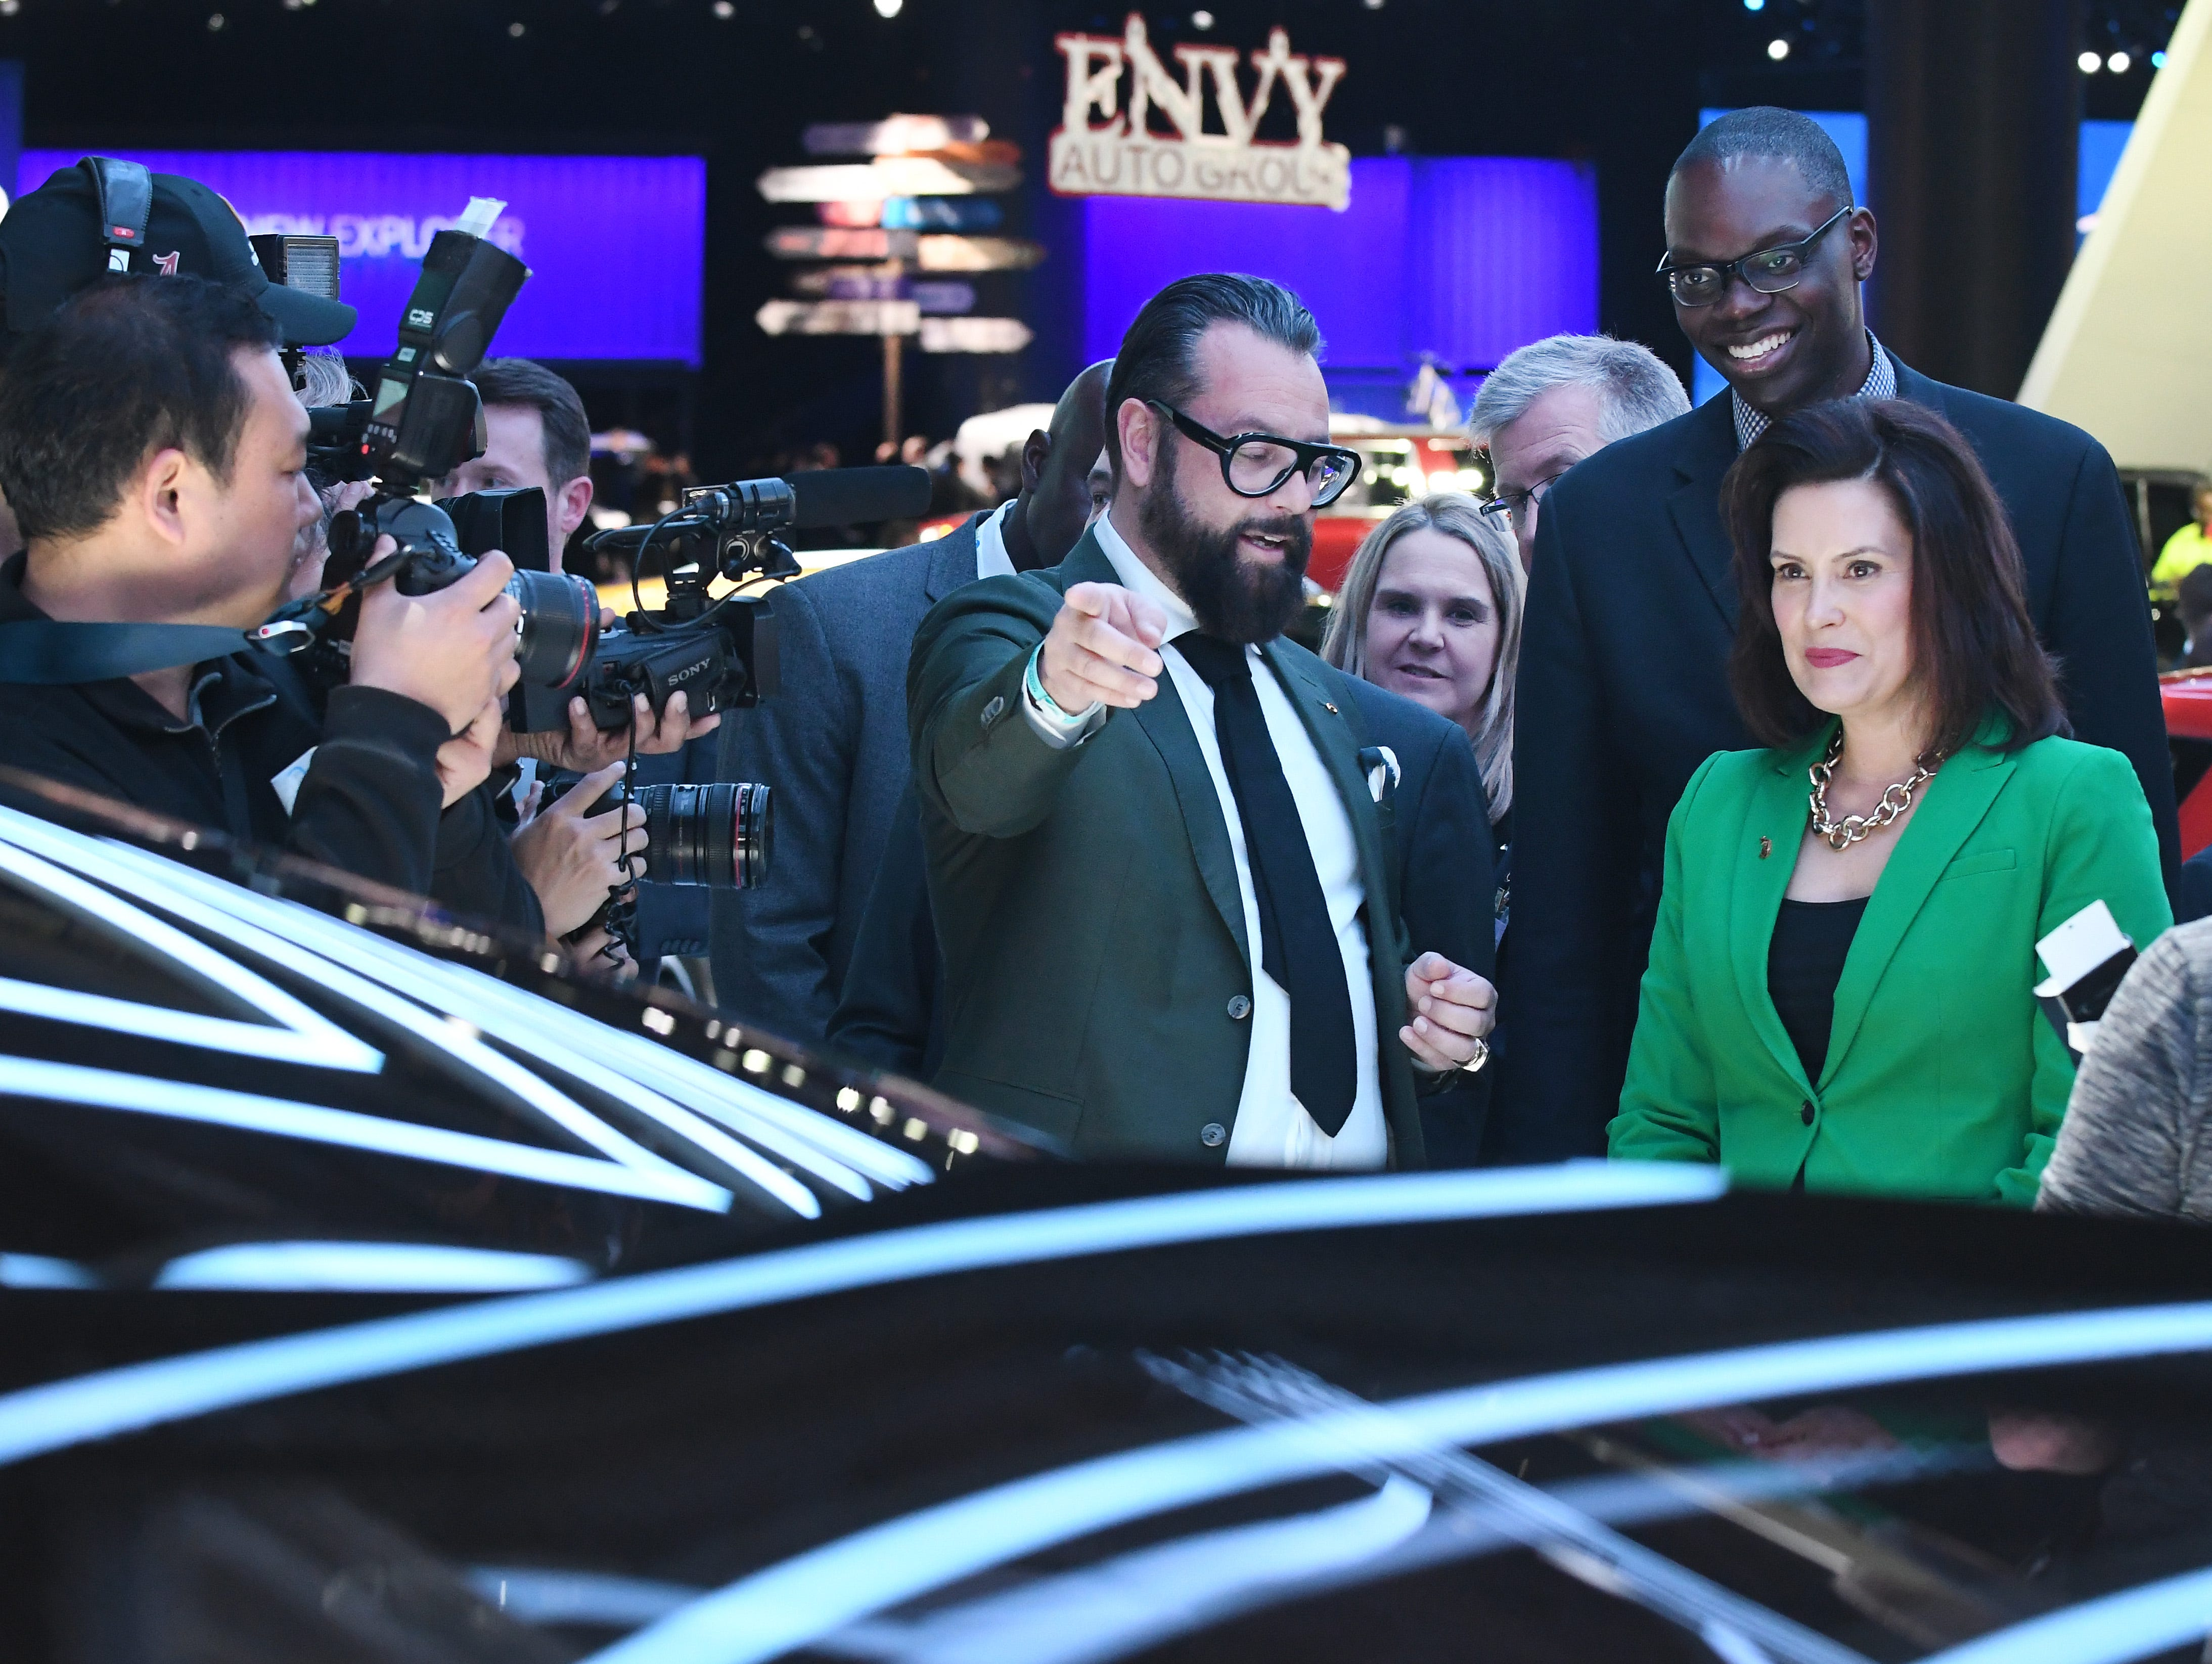 GAC Motor's Executive Design Directors Pontus Fontaeus shows Michigan Governor Gretchen Whitmer and Lieutenant Governor Garlin Gilchrist their display during a tour of the North American International Auto Show.